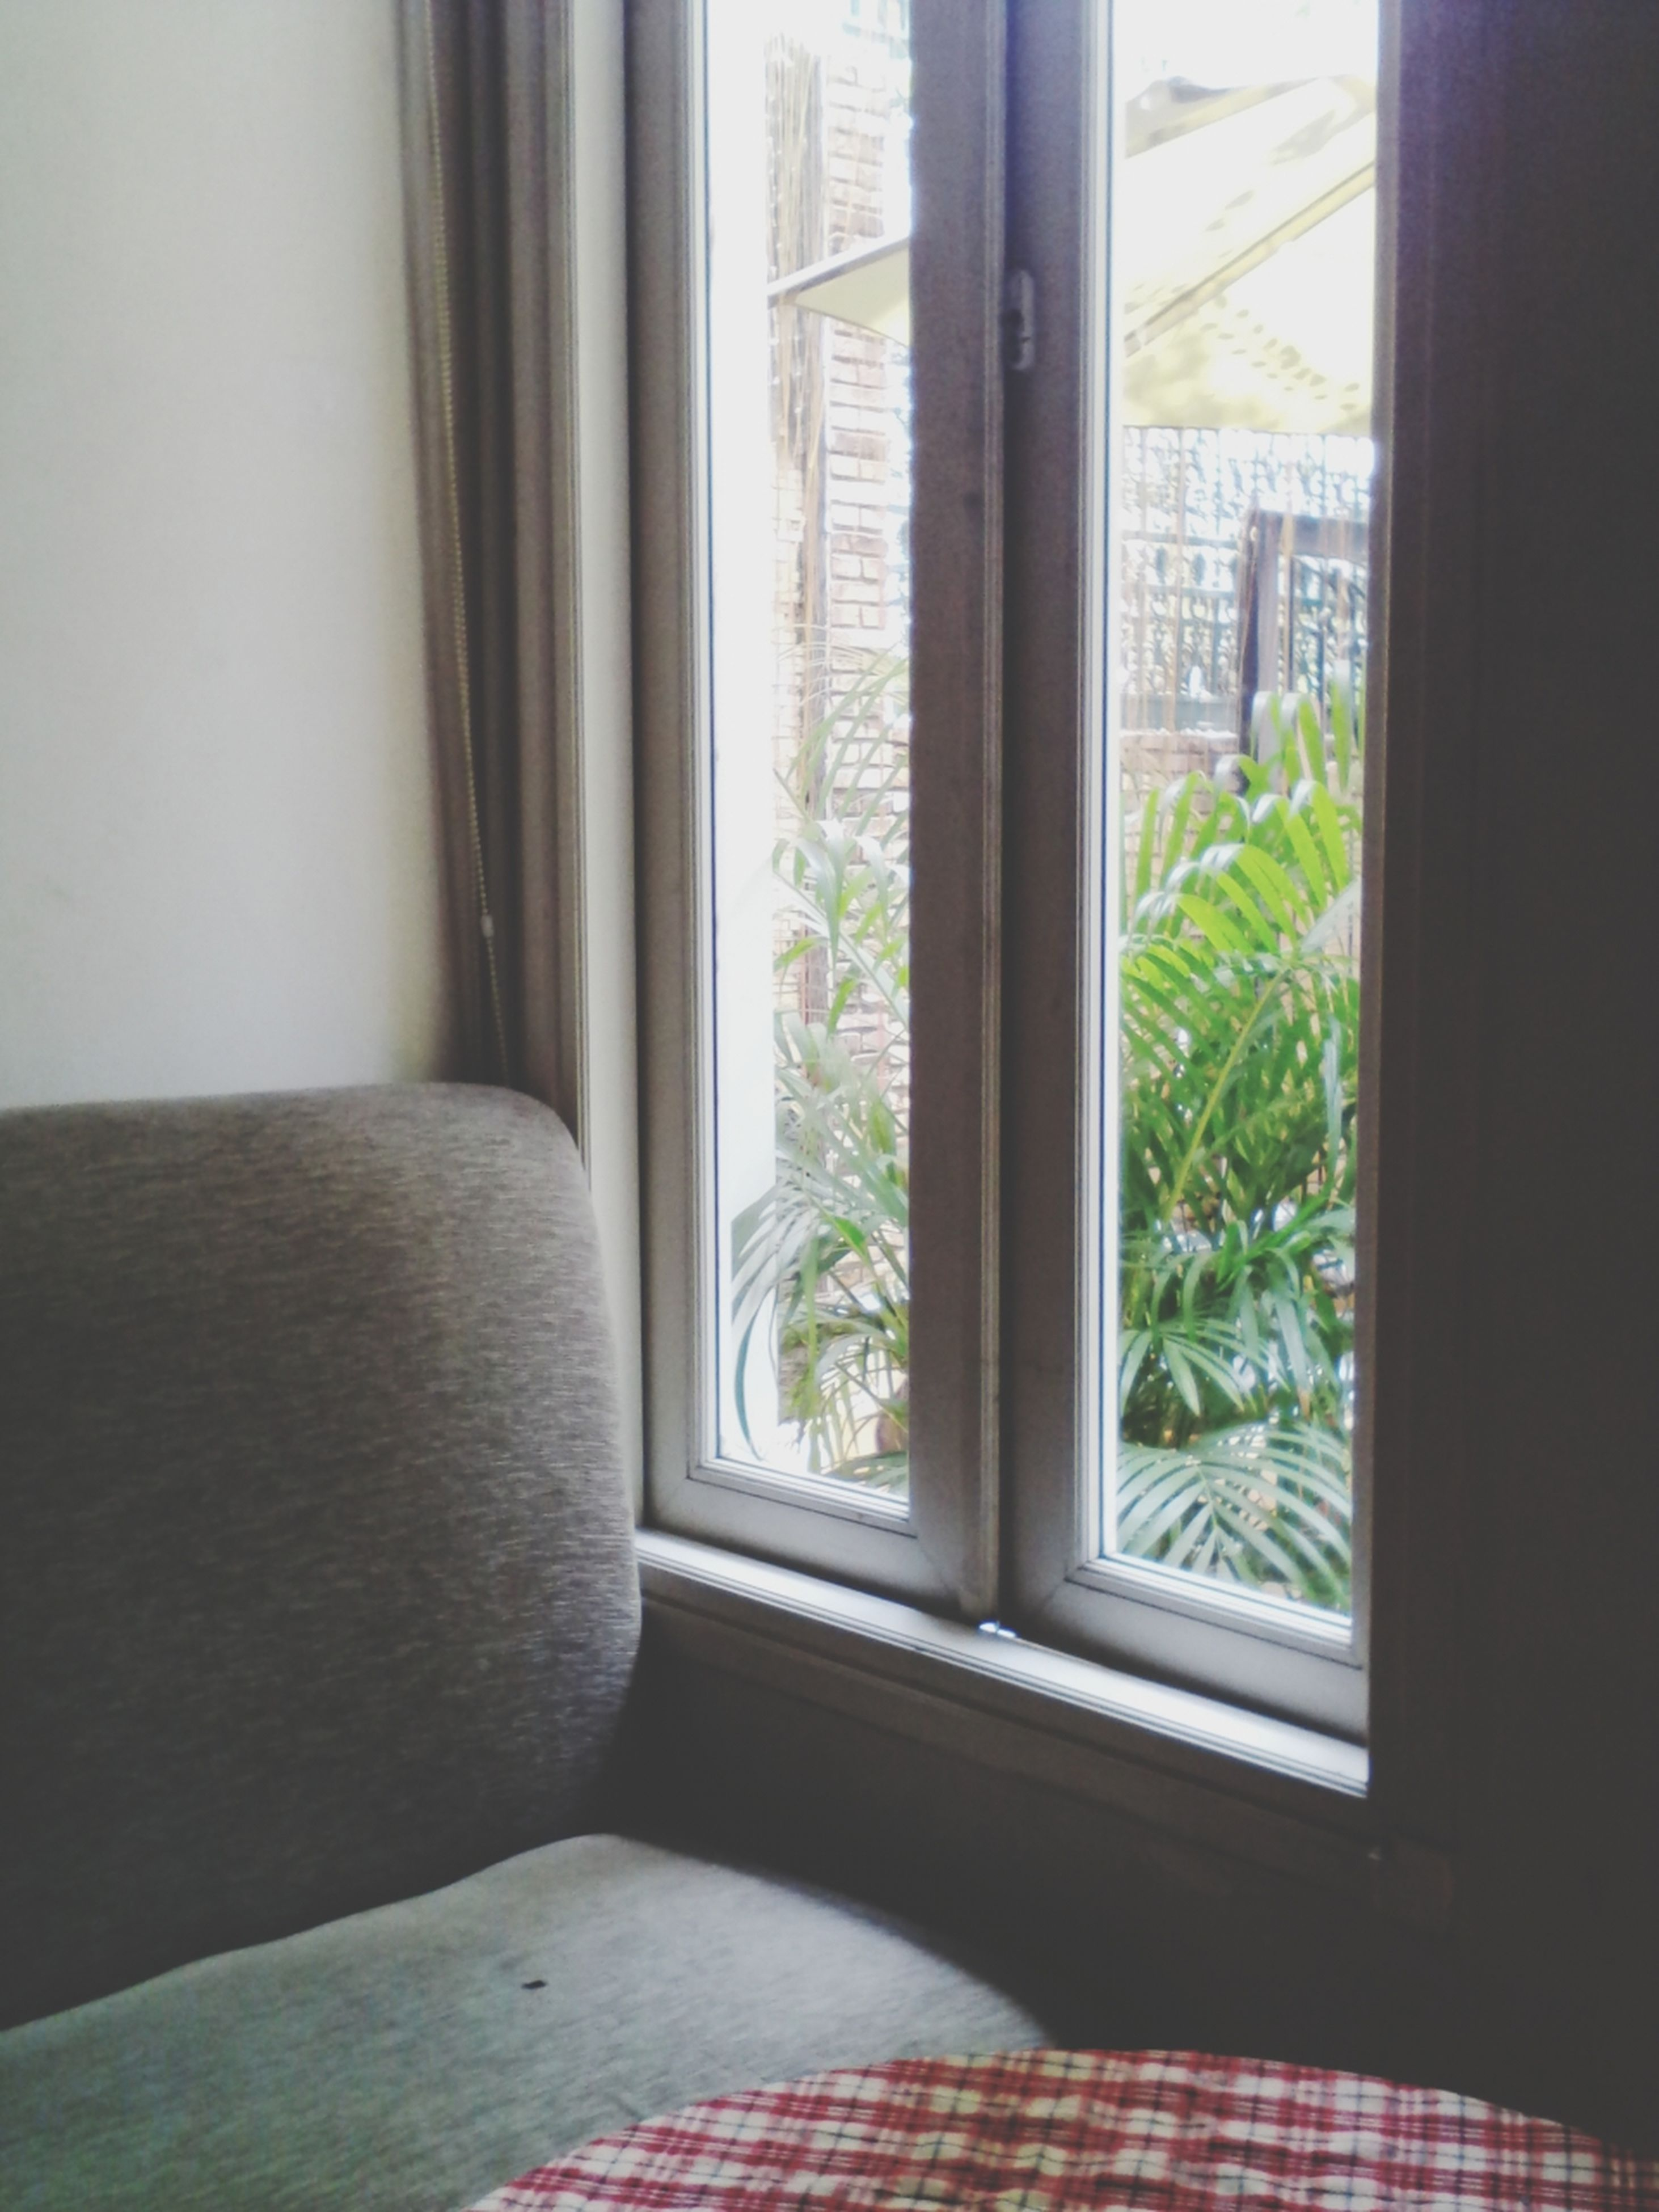 indoors, window, home interior, glass - material, transparent, curtain, architecture, built structure, house, window sill, door, sunlight, day, domestic room, absence, potted plant, no people, open, closed, flooring